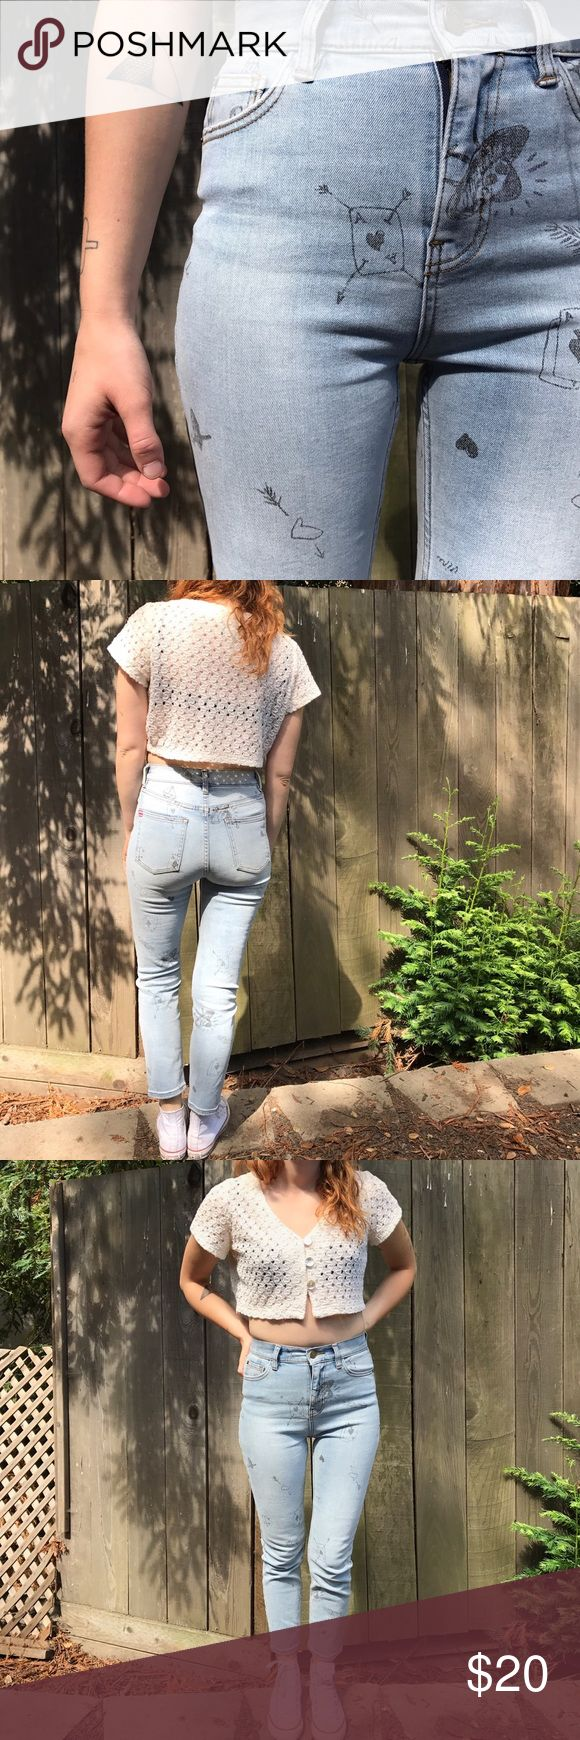 BDG High wasted light wash graffiti jeans These are super unique with little sketches on them, super cute for summer and slightly stretchy. Urban outfitter BDG high rise skinny graffiti jeans BDG Pants Skinny